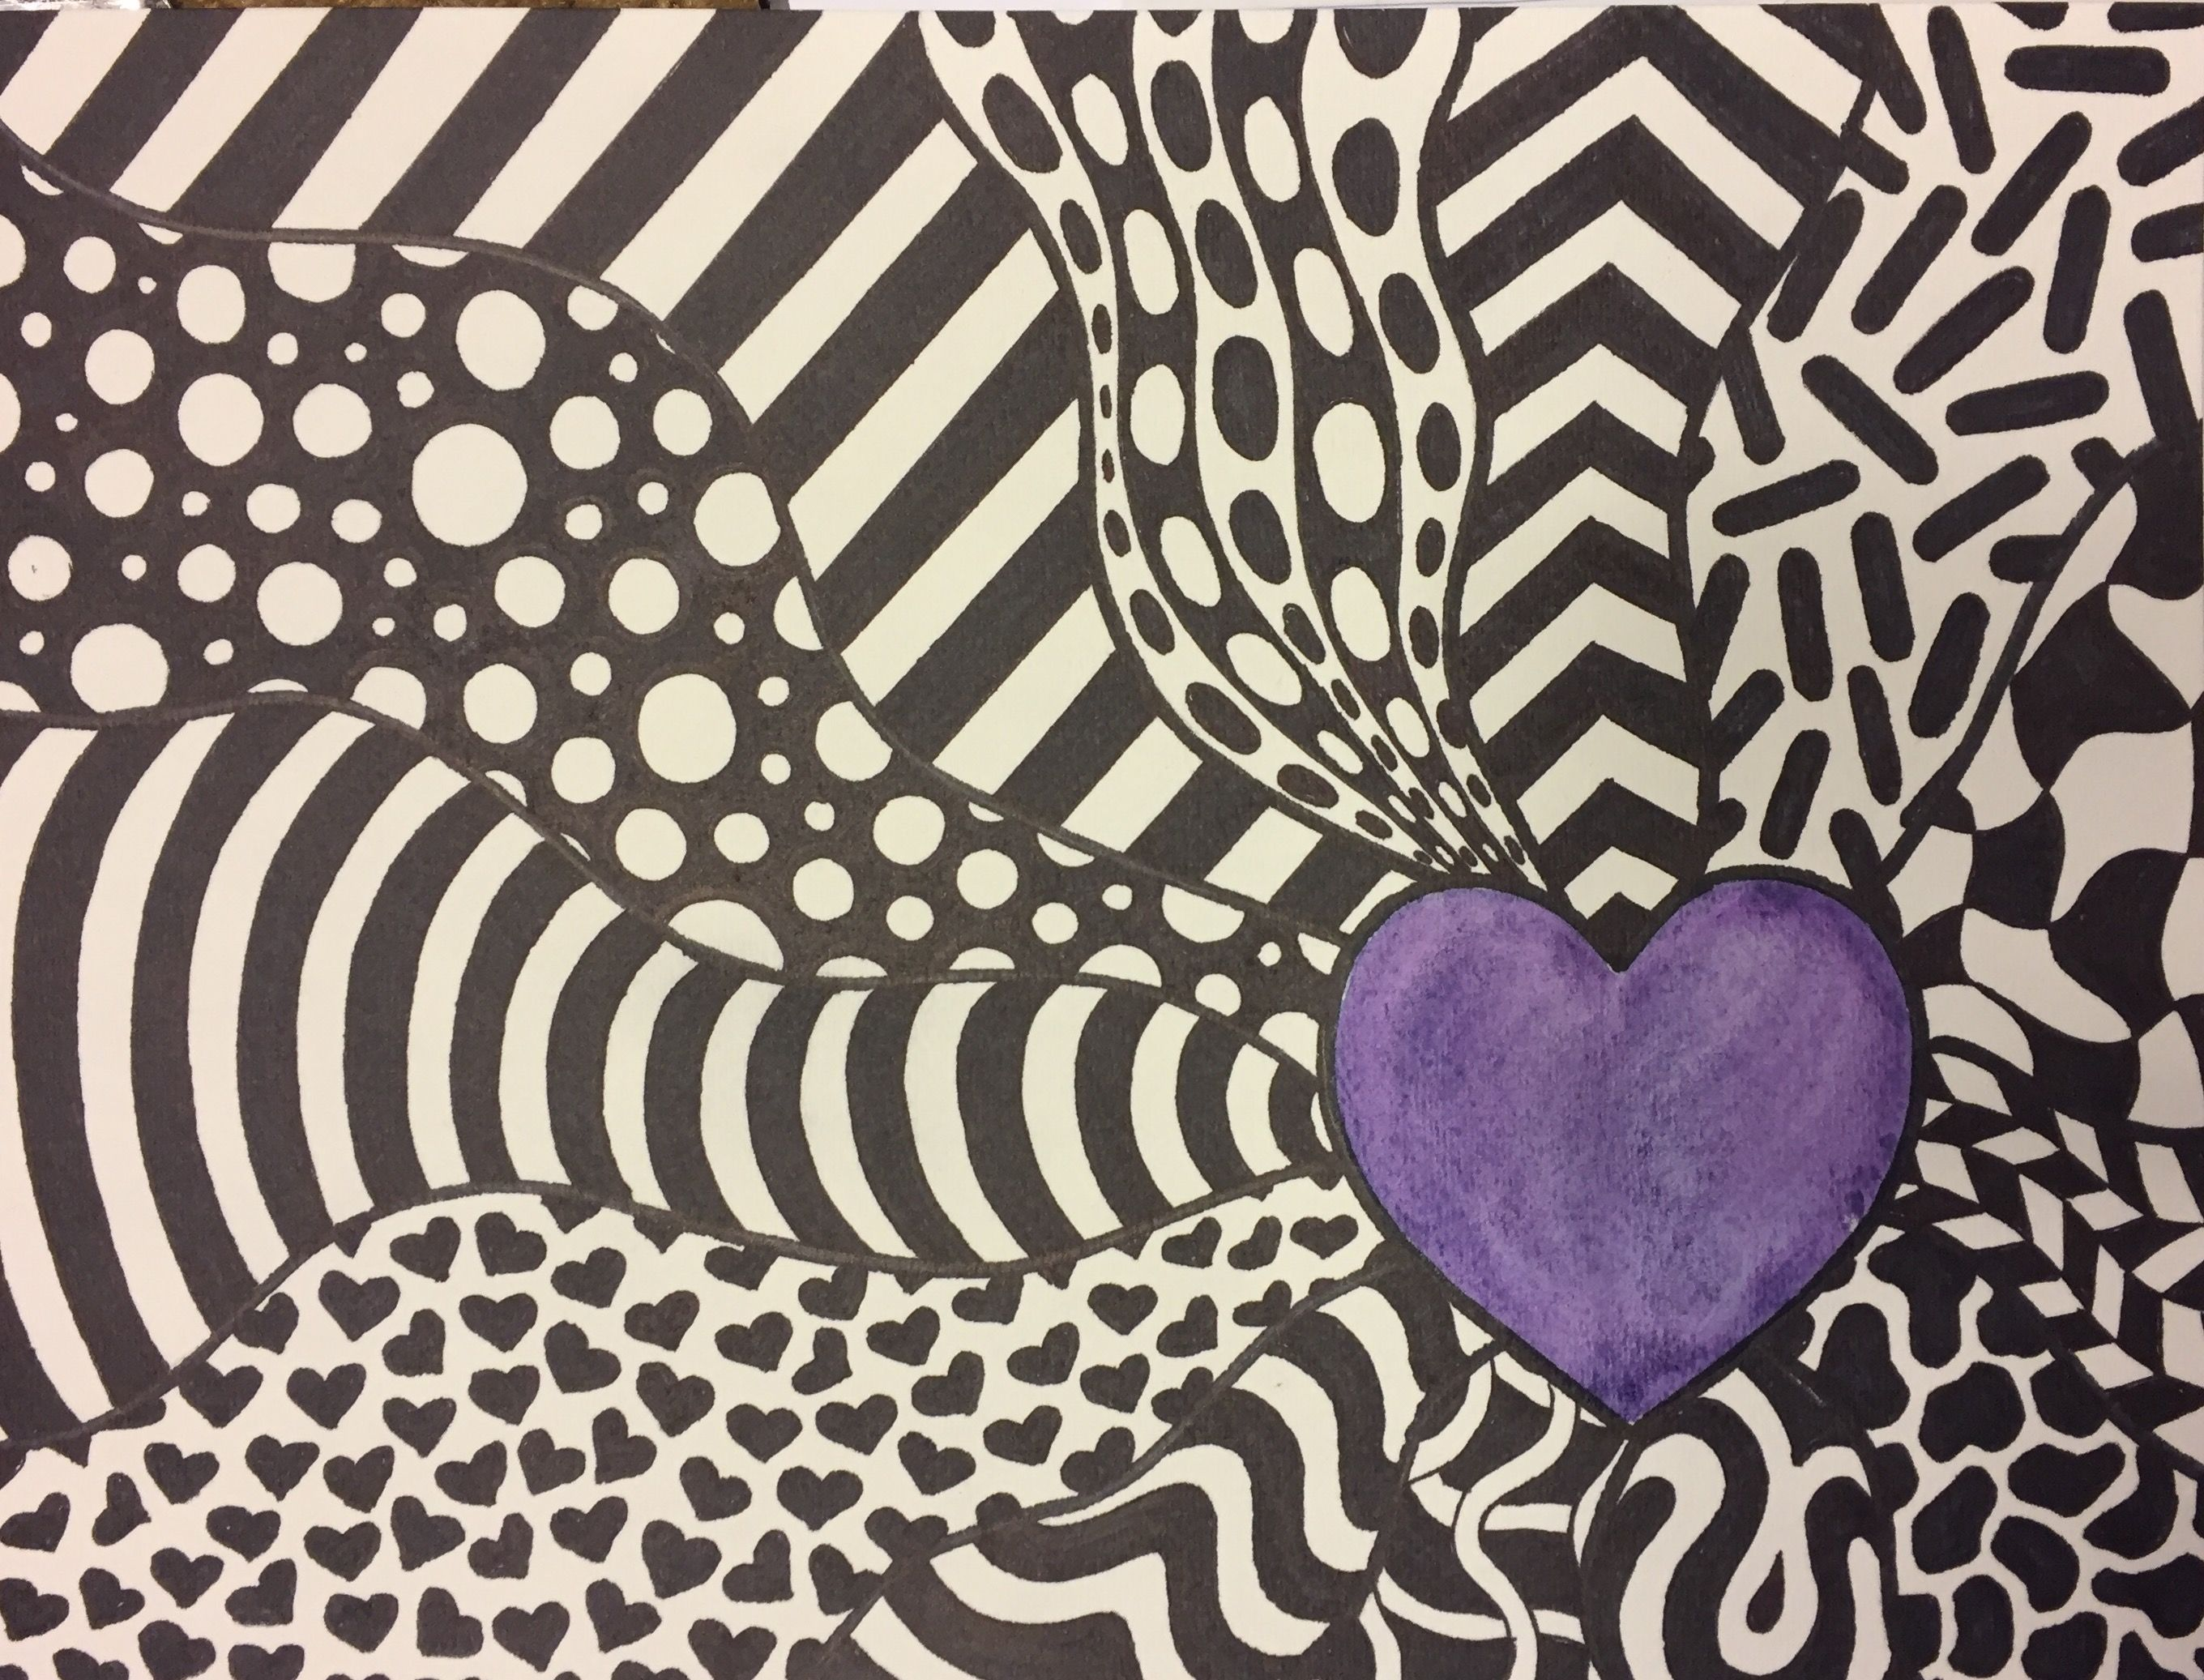 Middle School Art Project Contrast Pattern Emphasis Zentangle Heart Art Lesson Middle School Art Projects School Art Projects Elementary Art Projects